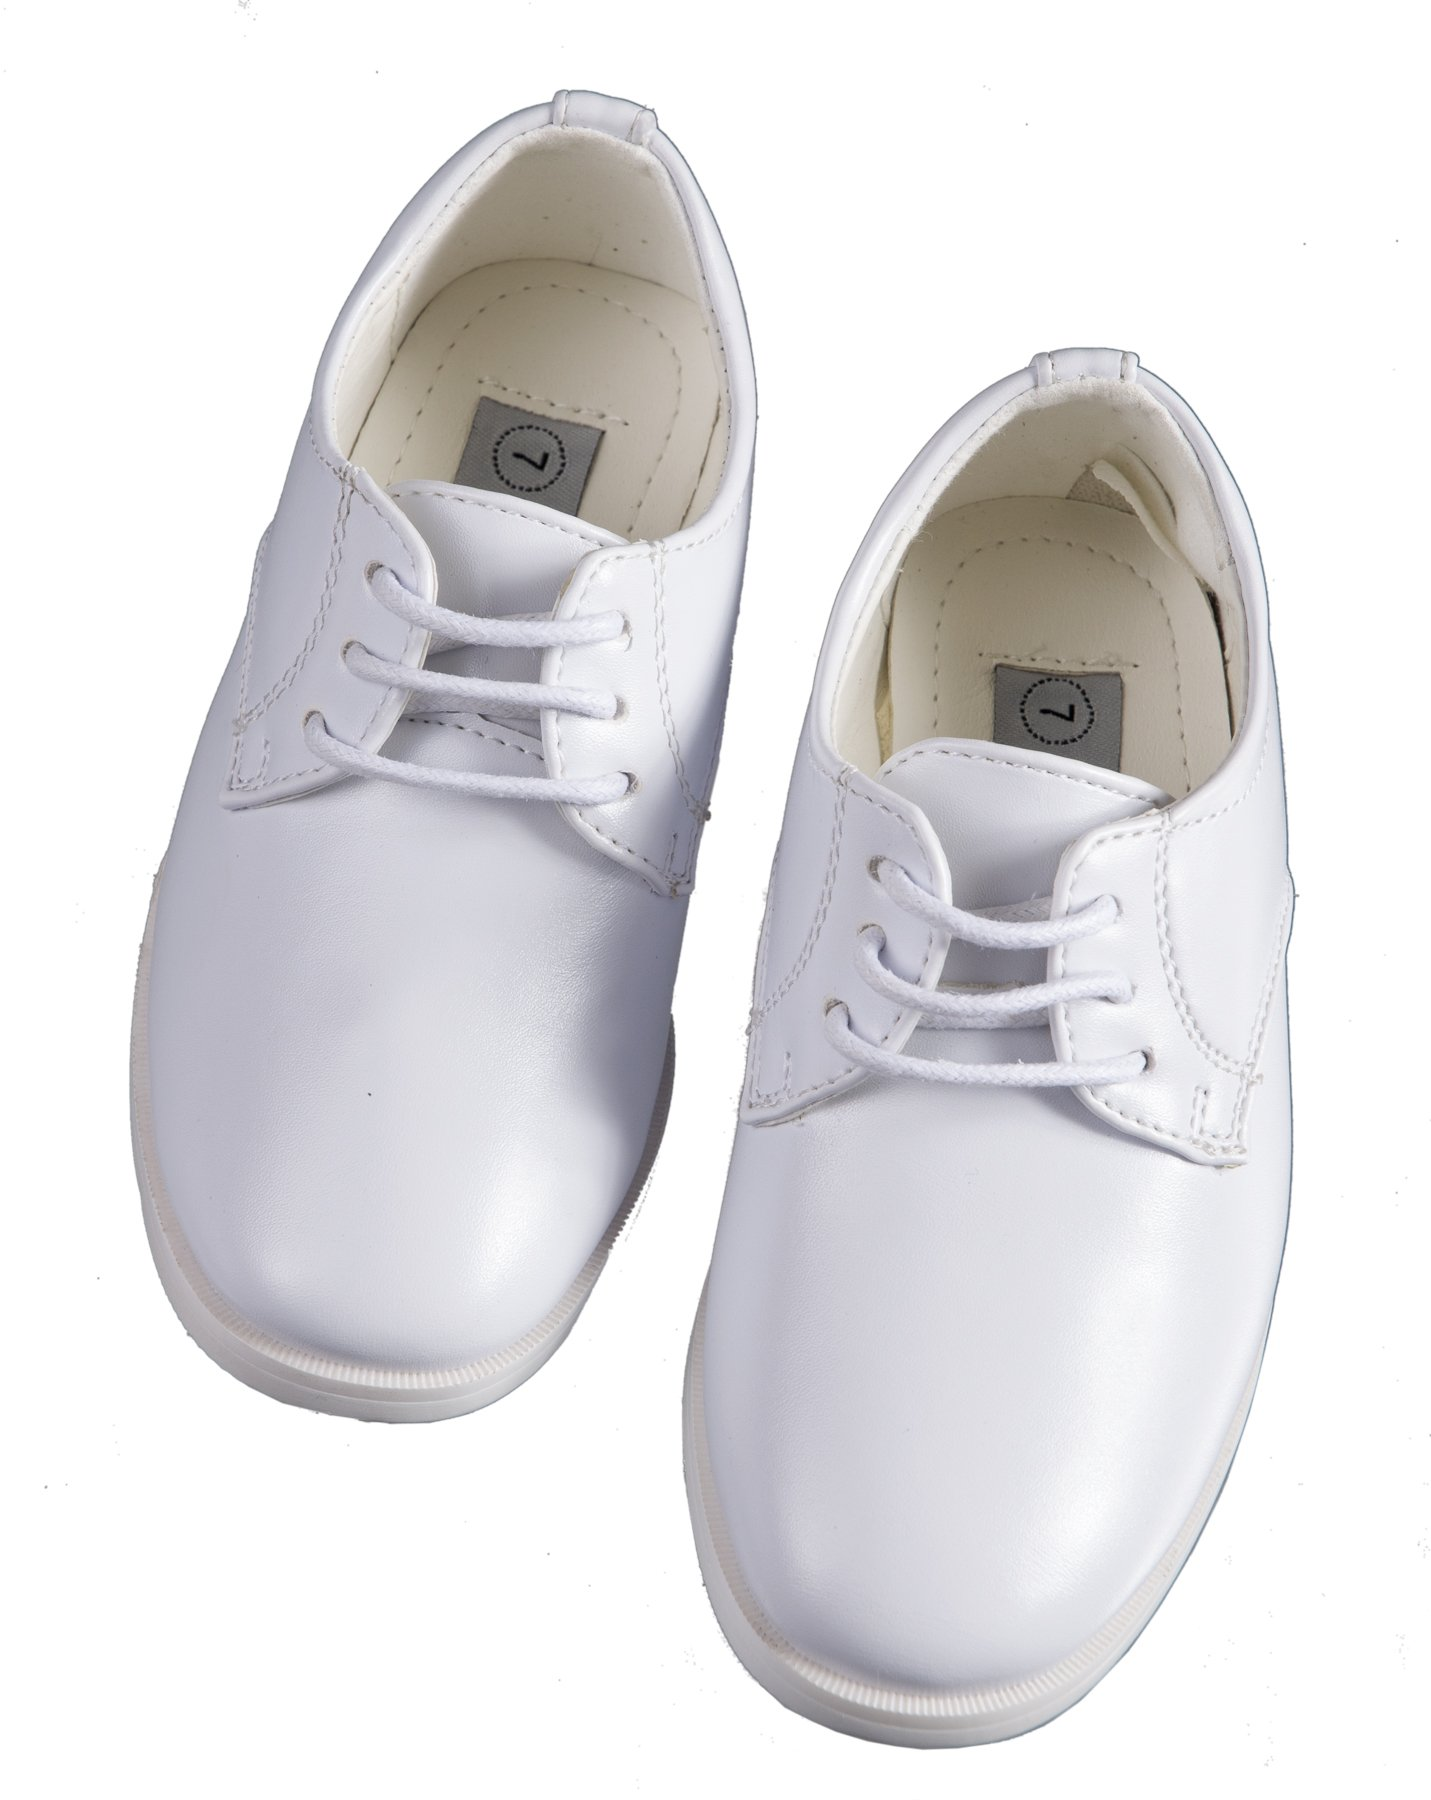 Boys White Lace Up Round Toe Dress Shoes - Wedding - First Communion (12 M US Little Kid)